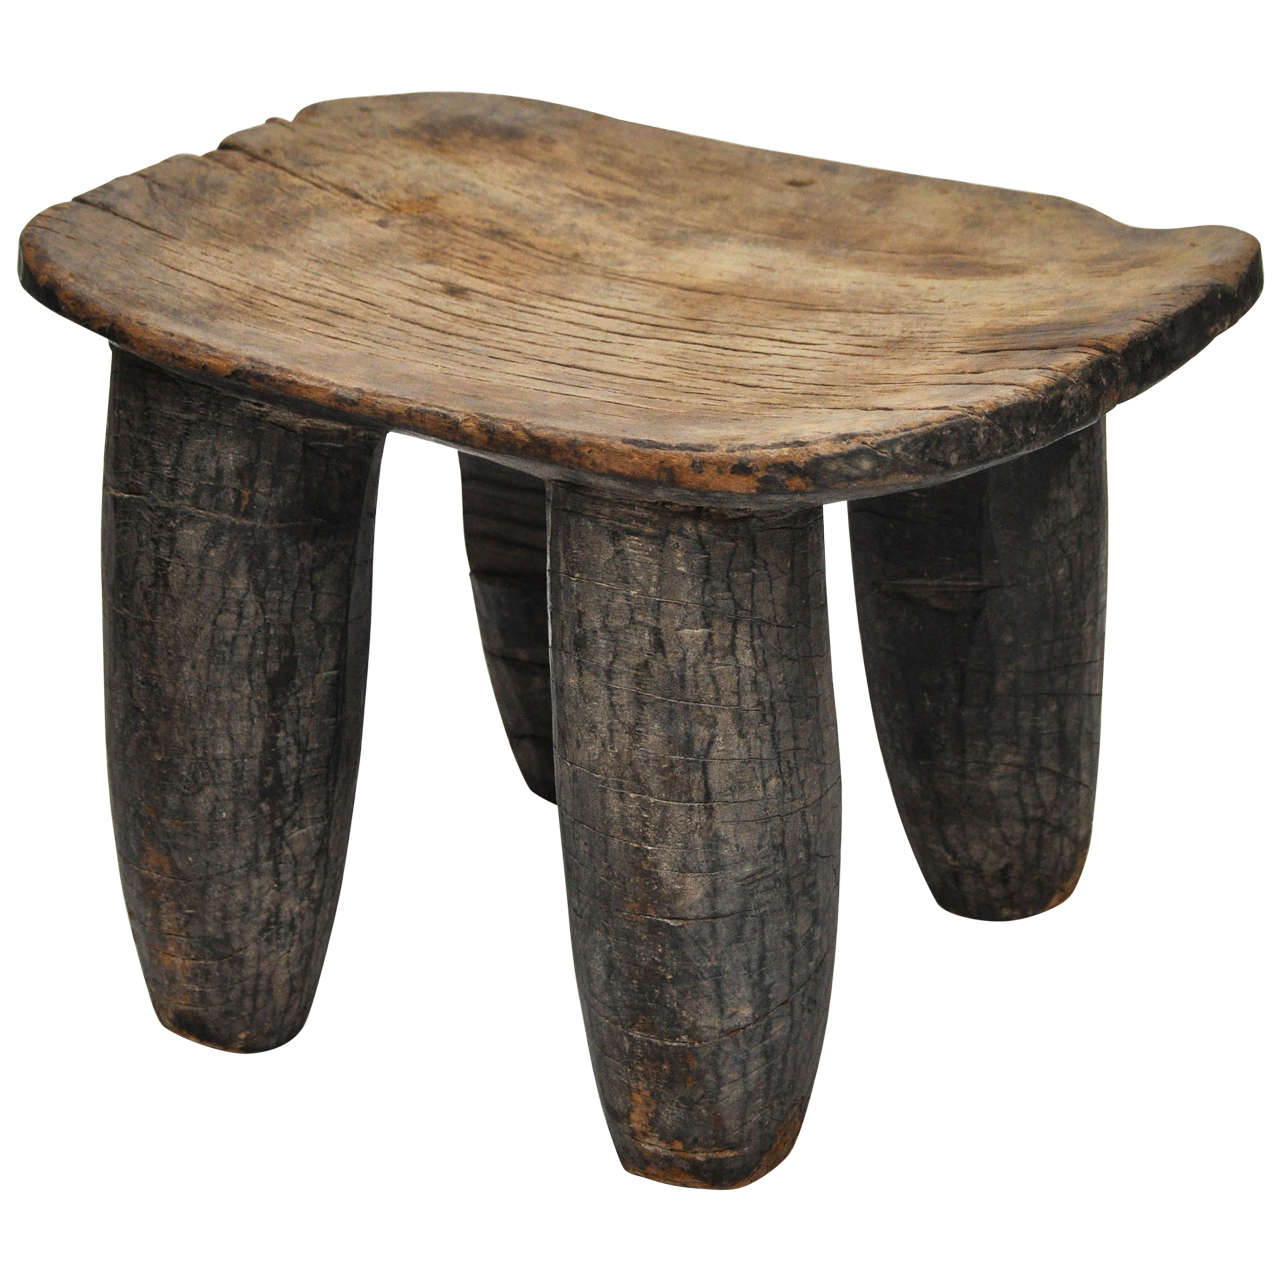 Four-Legged Senufo African Stool 1